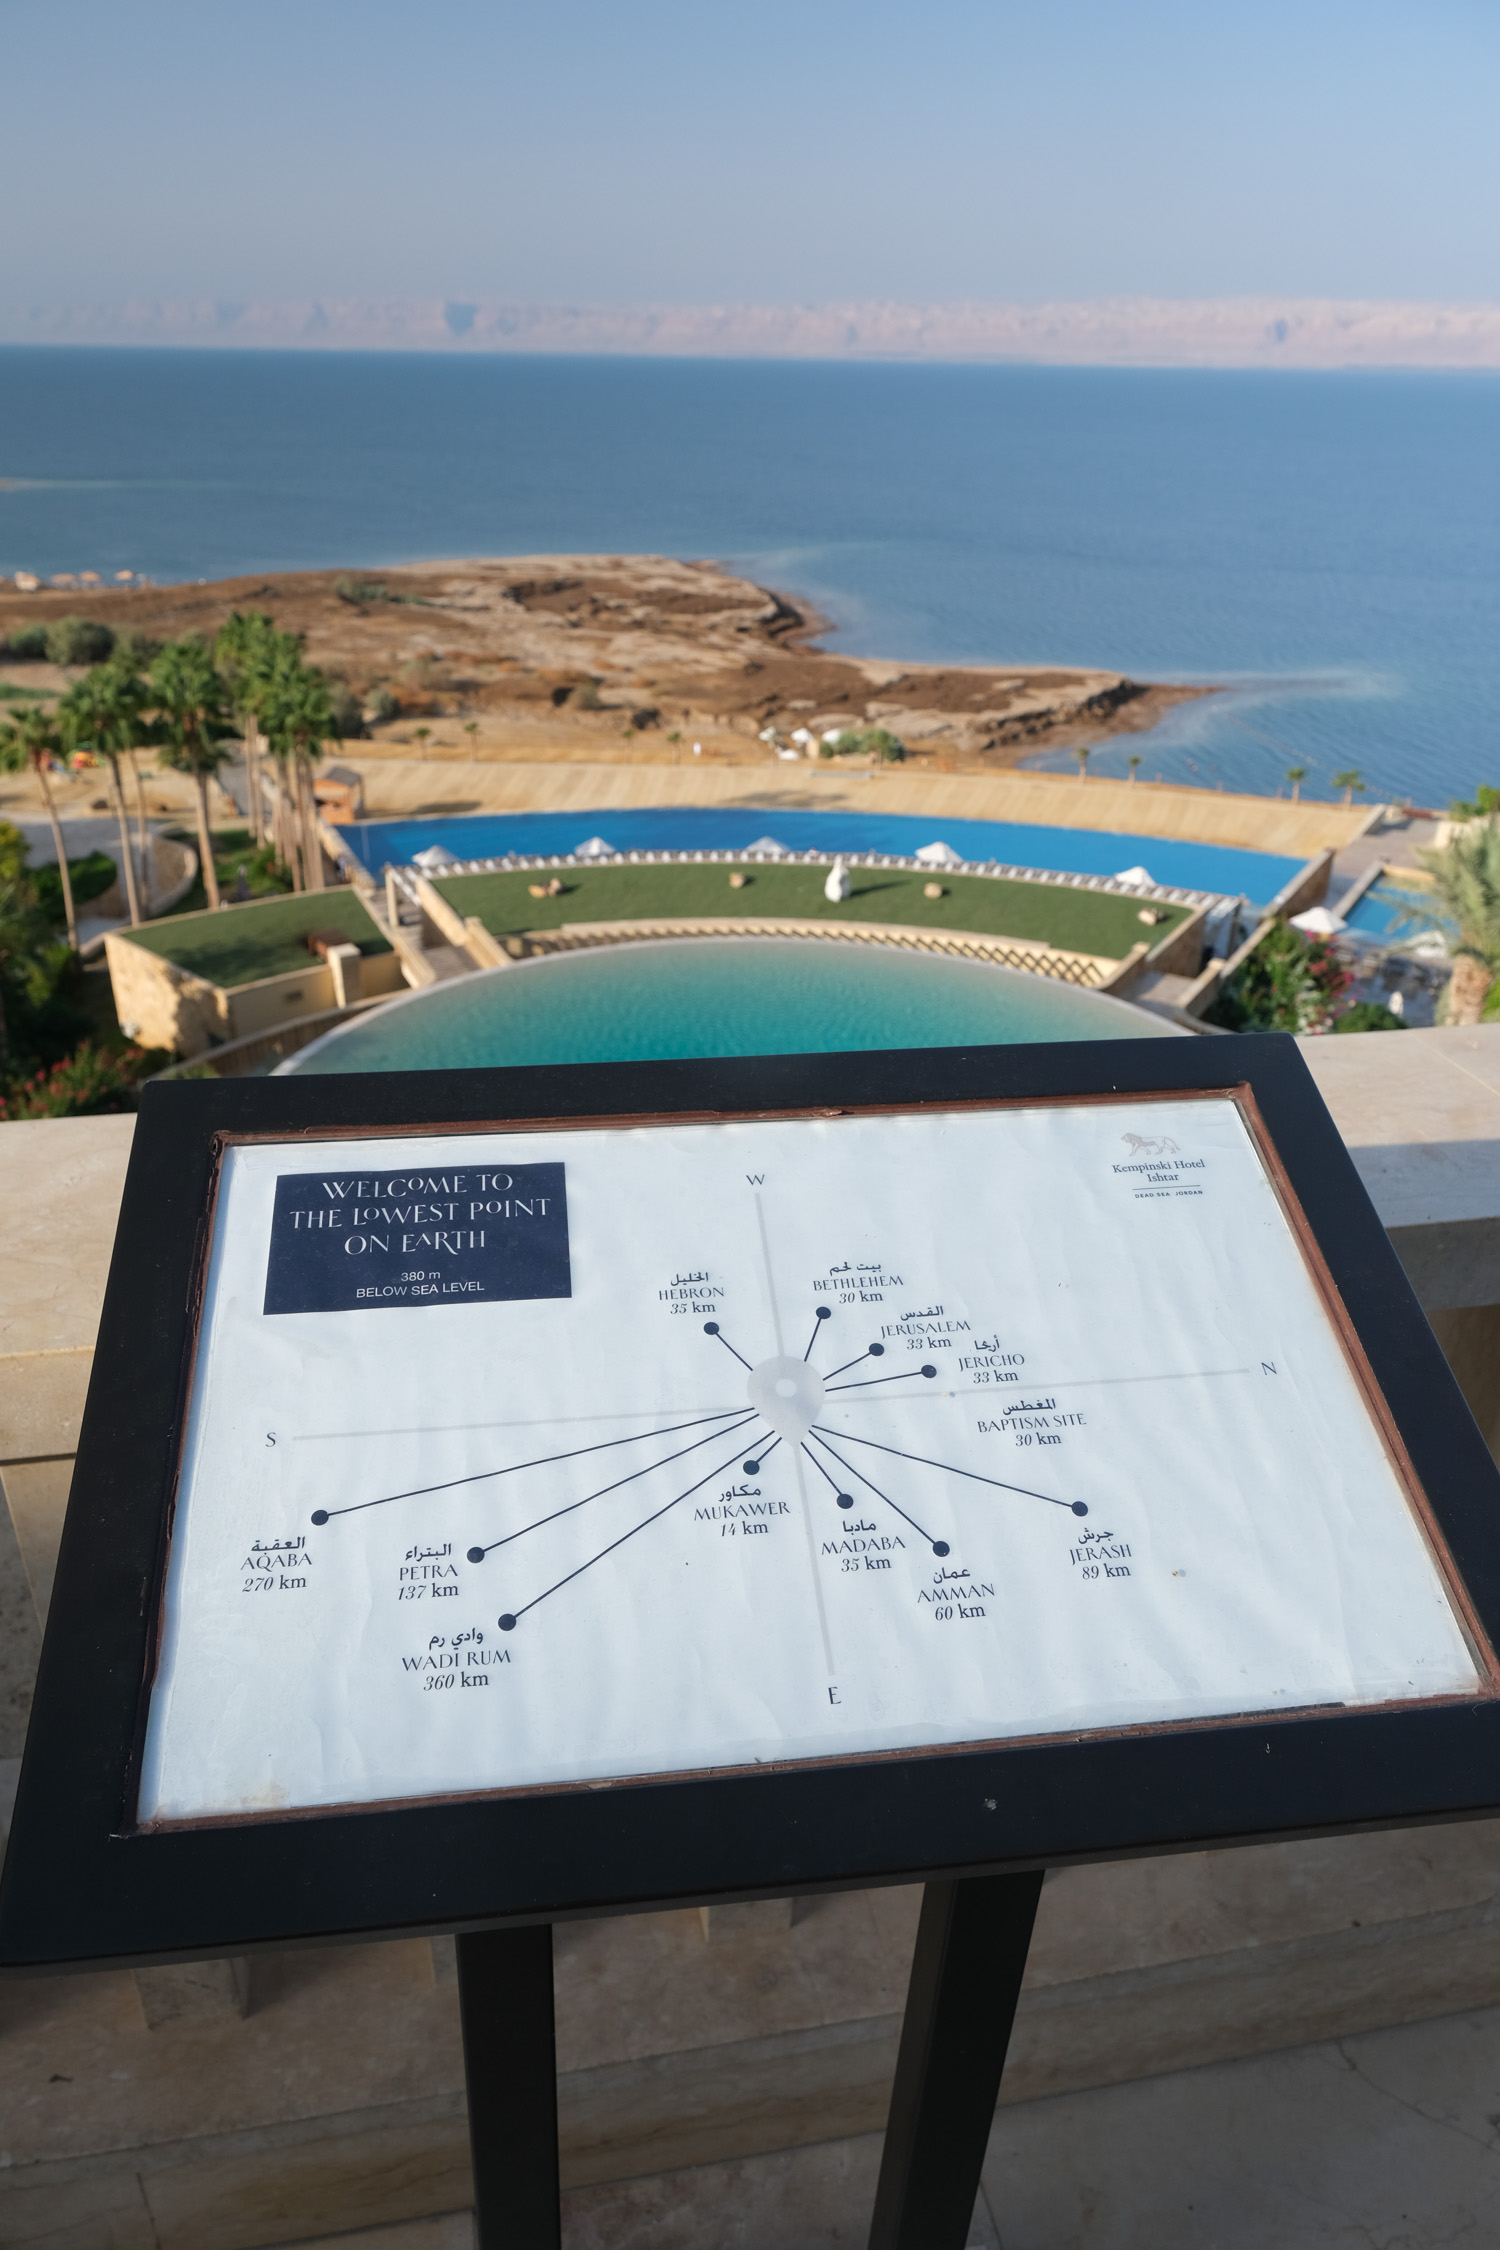 The Dead Sea resort